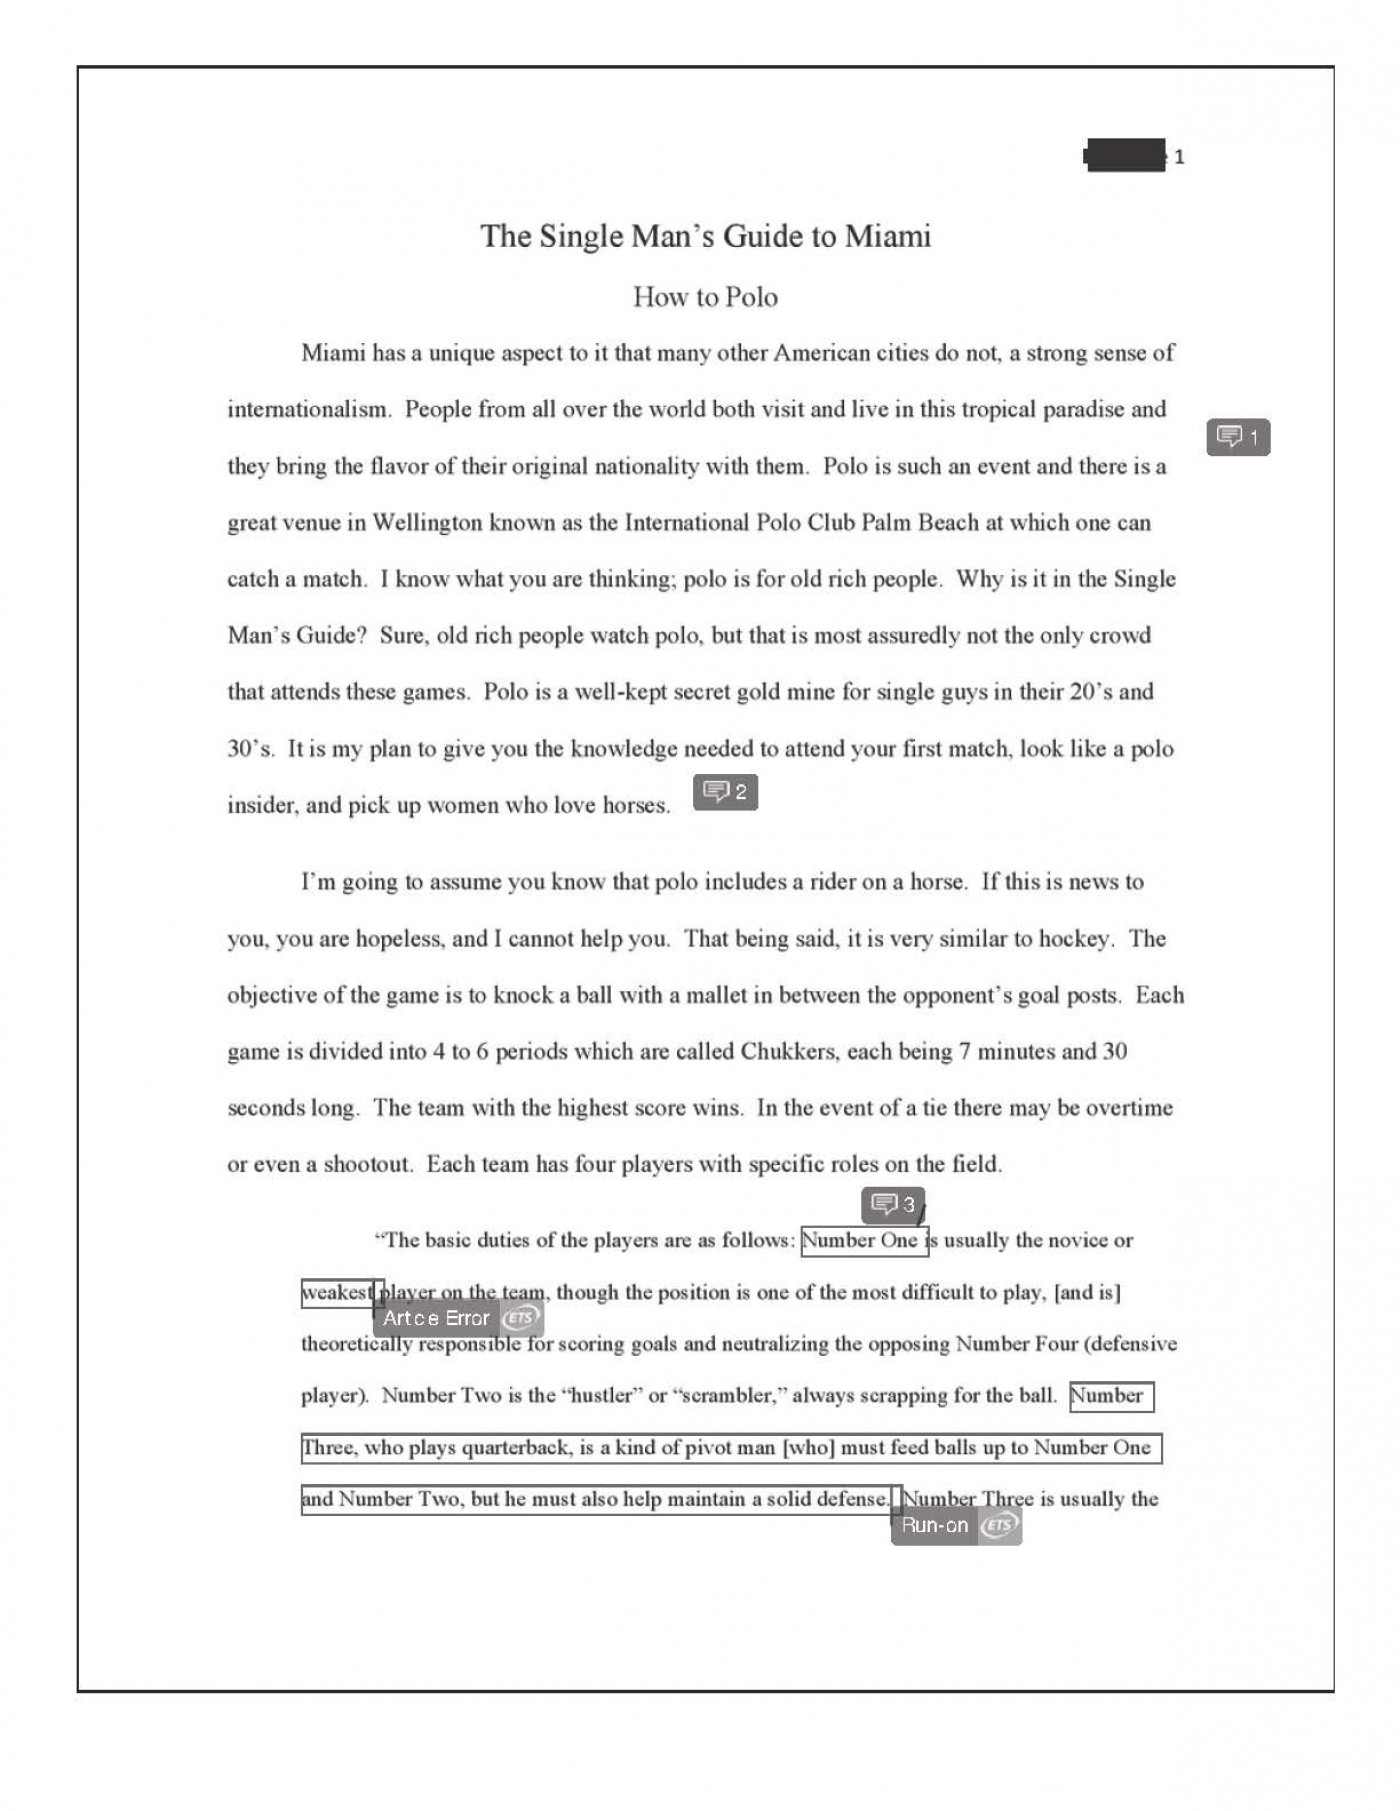 007 Informative Essay Kinds Of Writing Types Essays The Center In Hindi Final How To Polo Redacted P Pdf Task Slideshare Ppt Withs Wikipedia Dreaded Examples 6th Grade Topics 1400